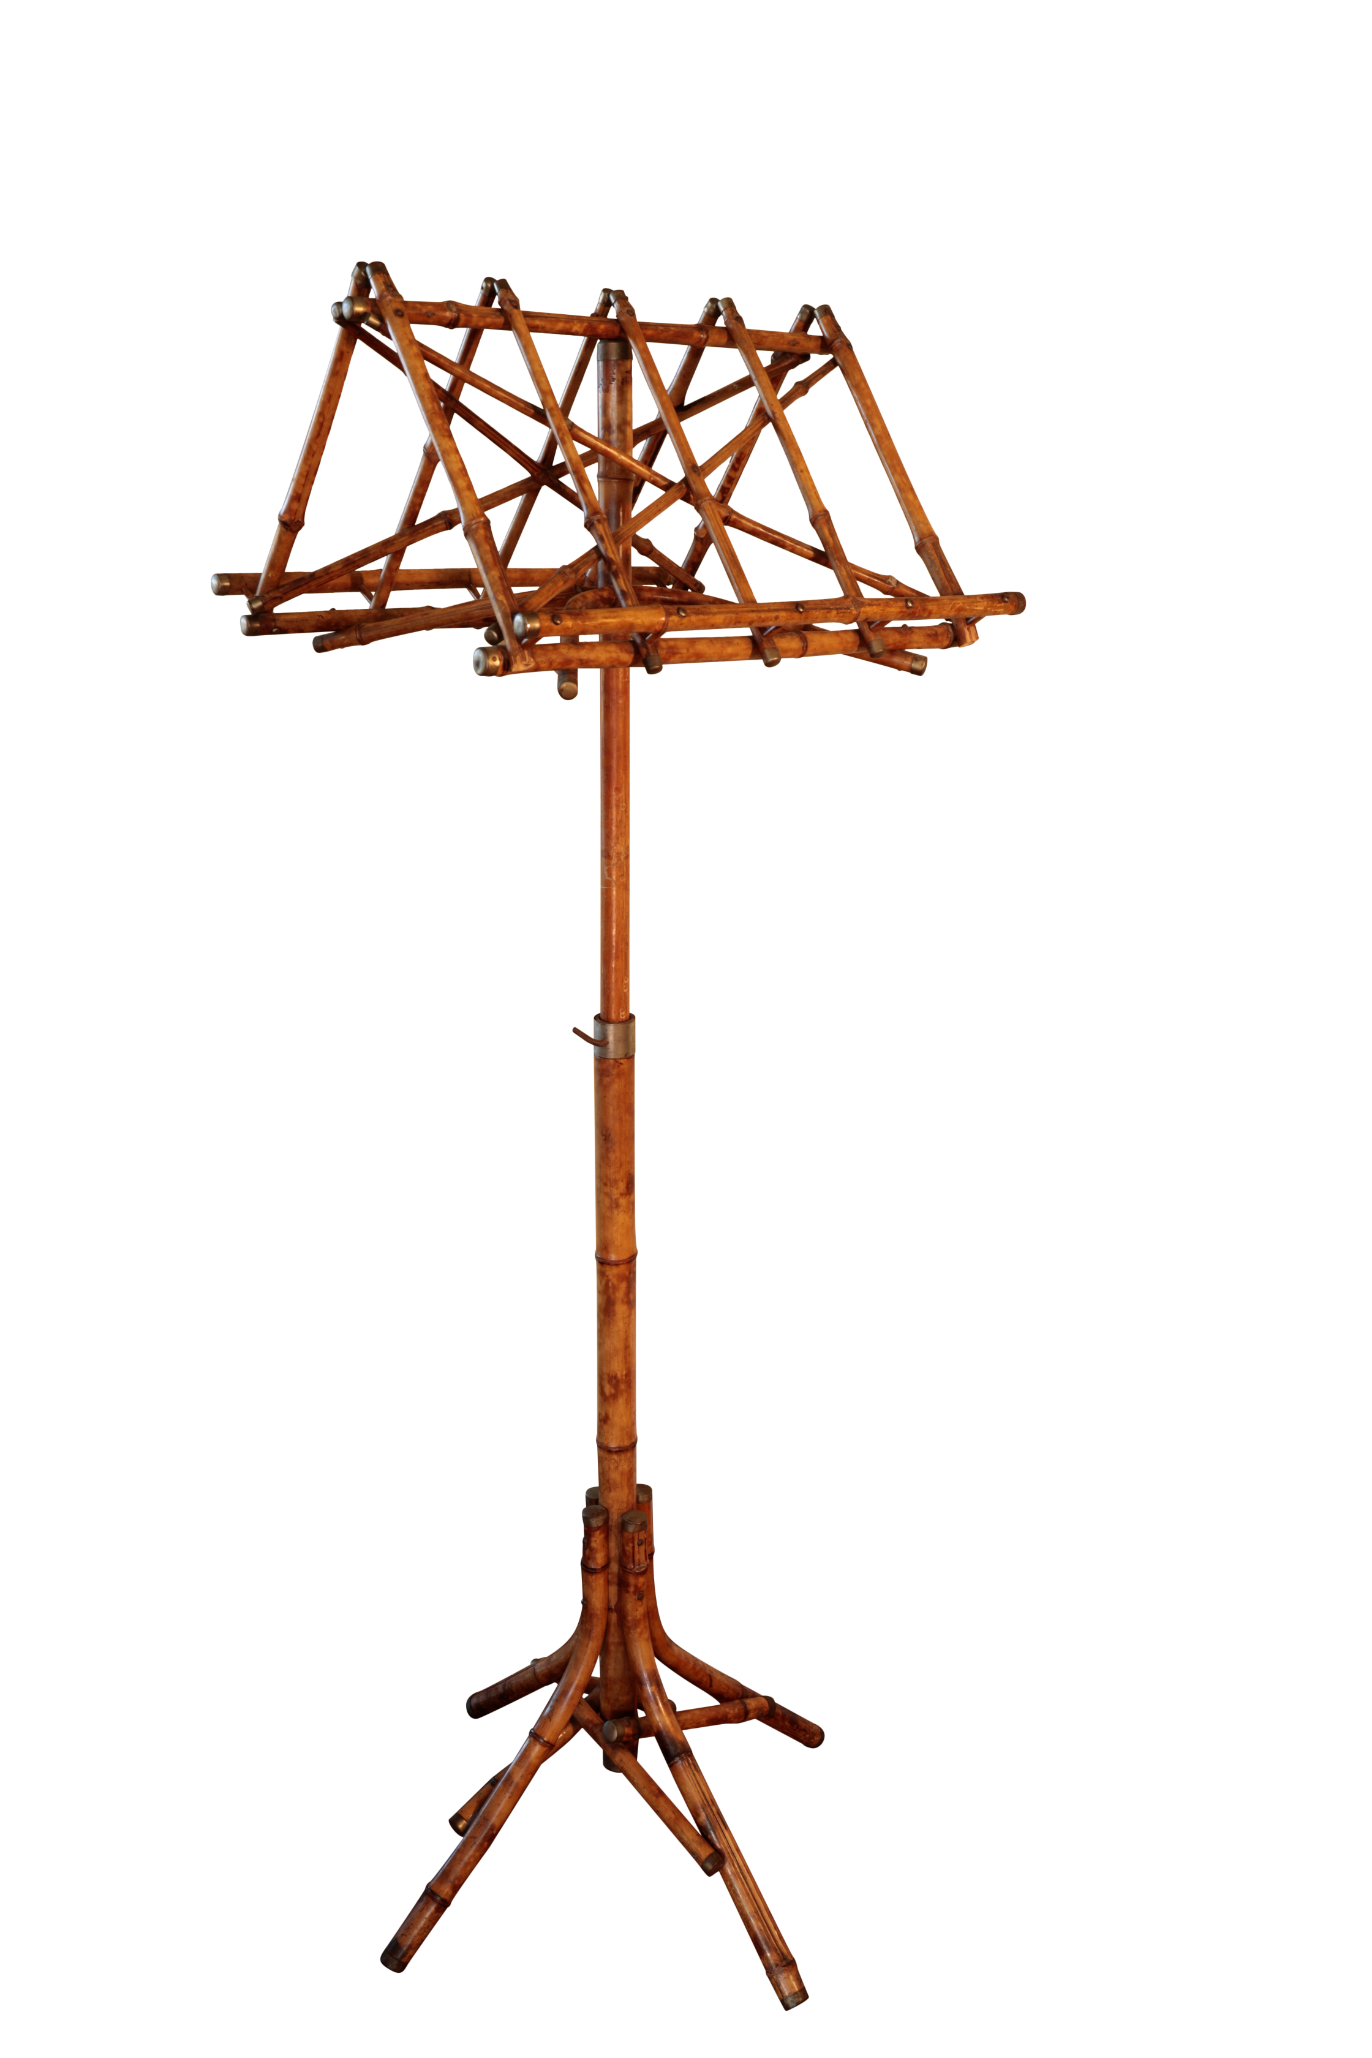 A BAMBOO AND BRASS MOUNTED DUET STAND, - Image 2 of 2